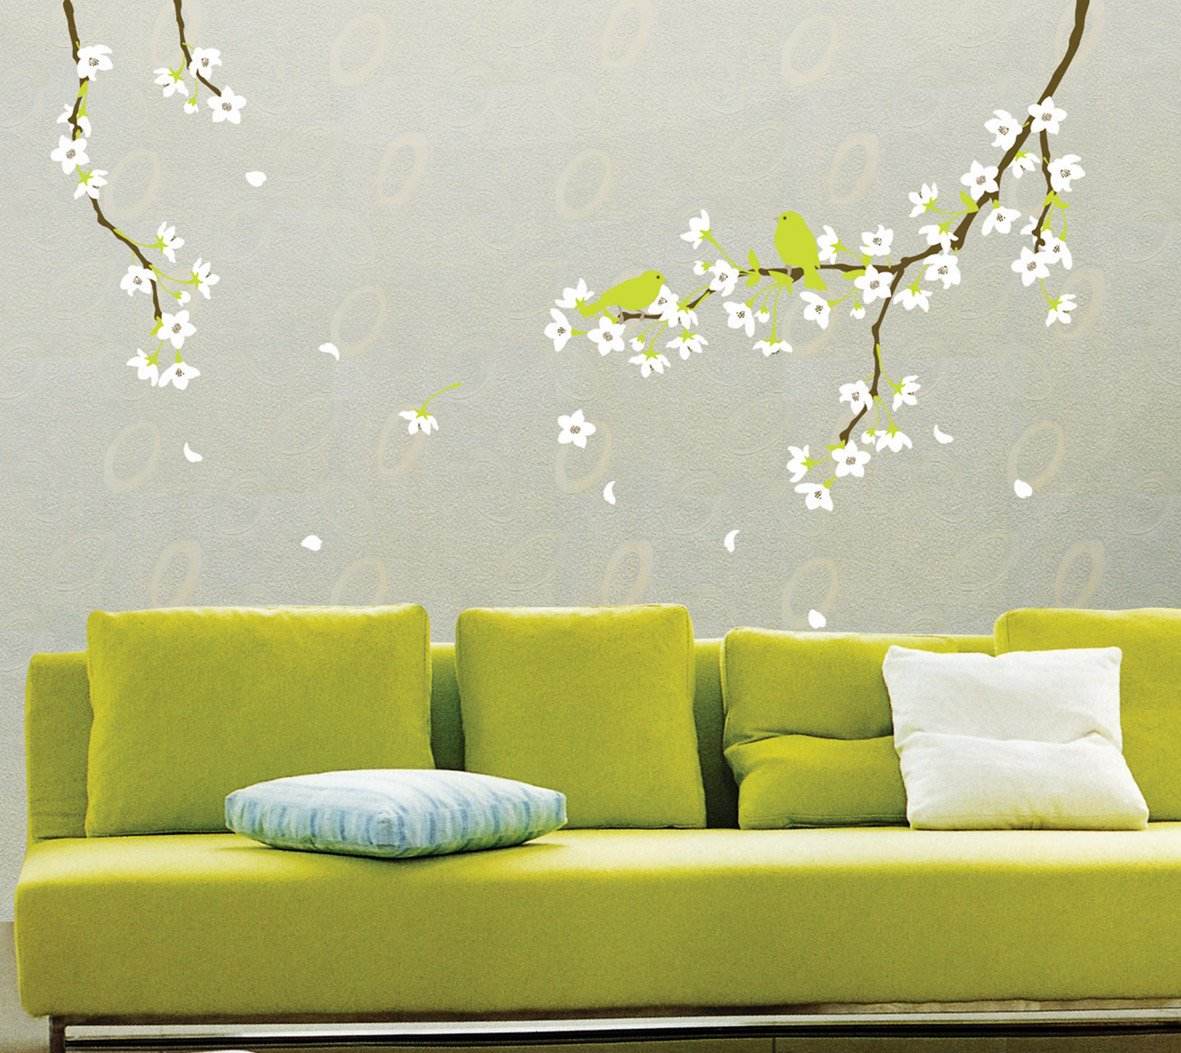 Reusable Decoration Wall Sticker Decal   Spring Flowers And Birds   Nature  Wall Decals   Amazon.com